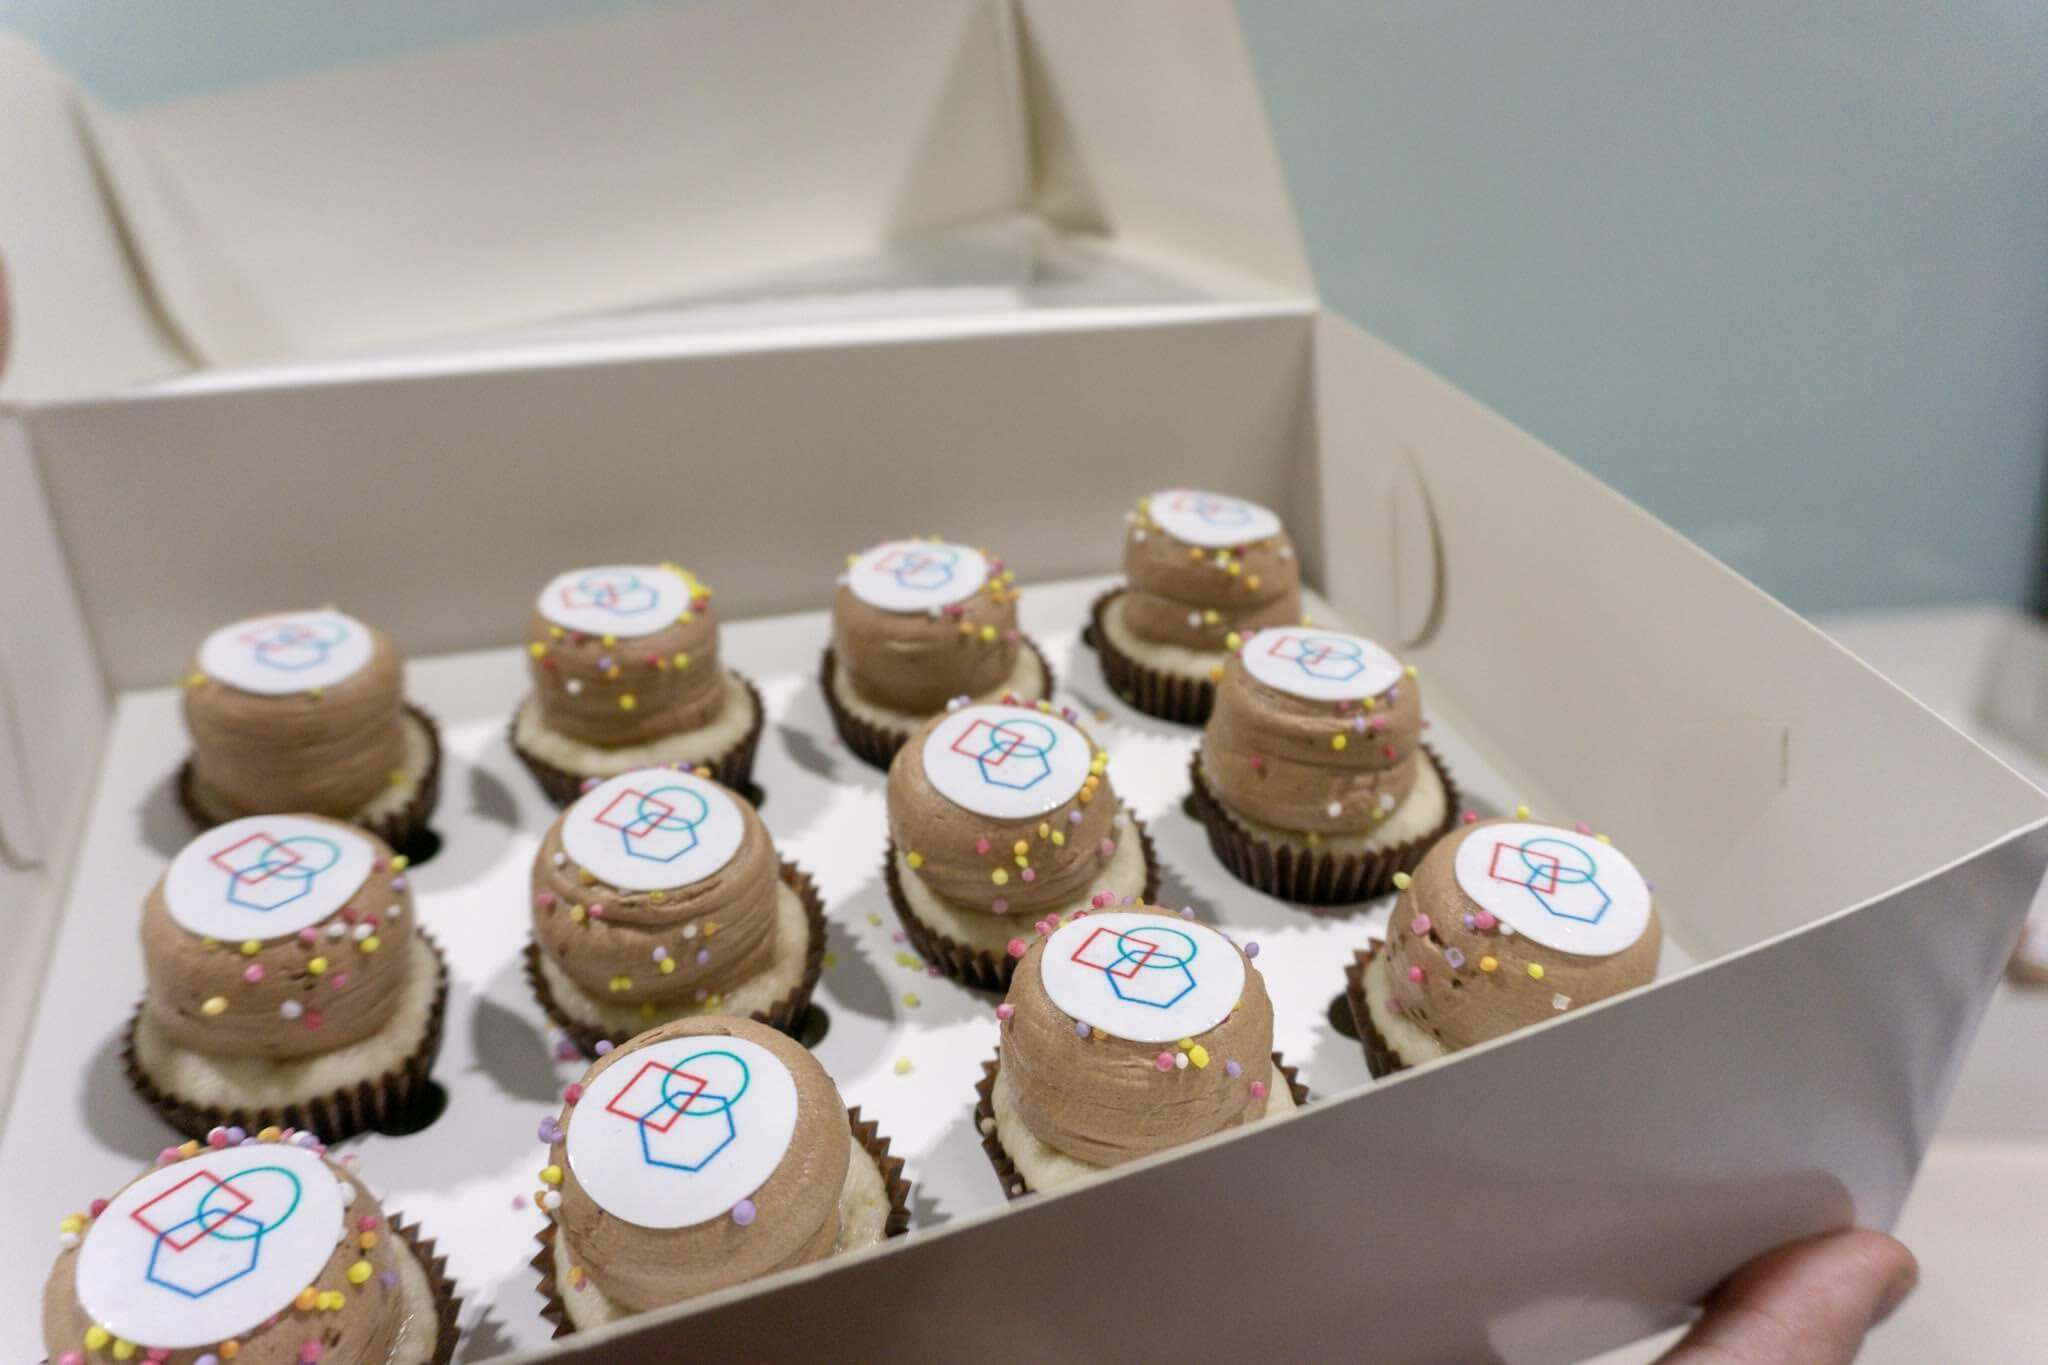 A white cardboard box with twelve miniature cupcakes. They are brown and on top have a circle with a logo on it. The logo is comprised of the overlapping outlines of shapes